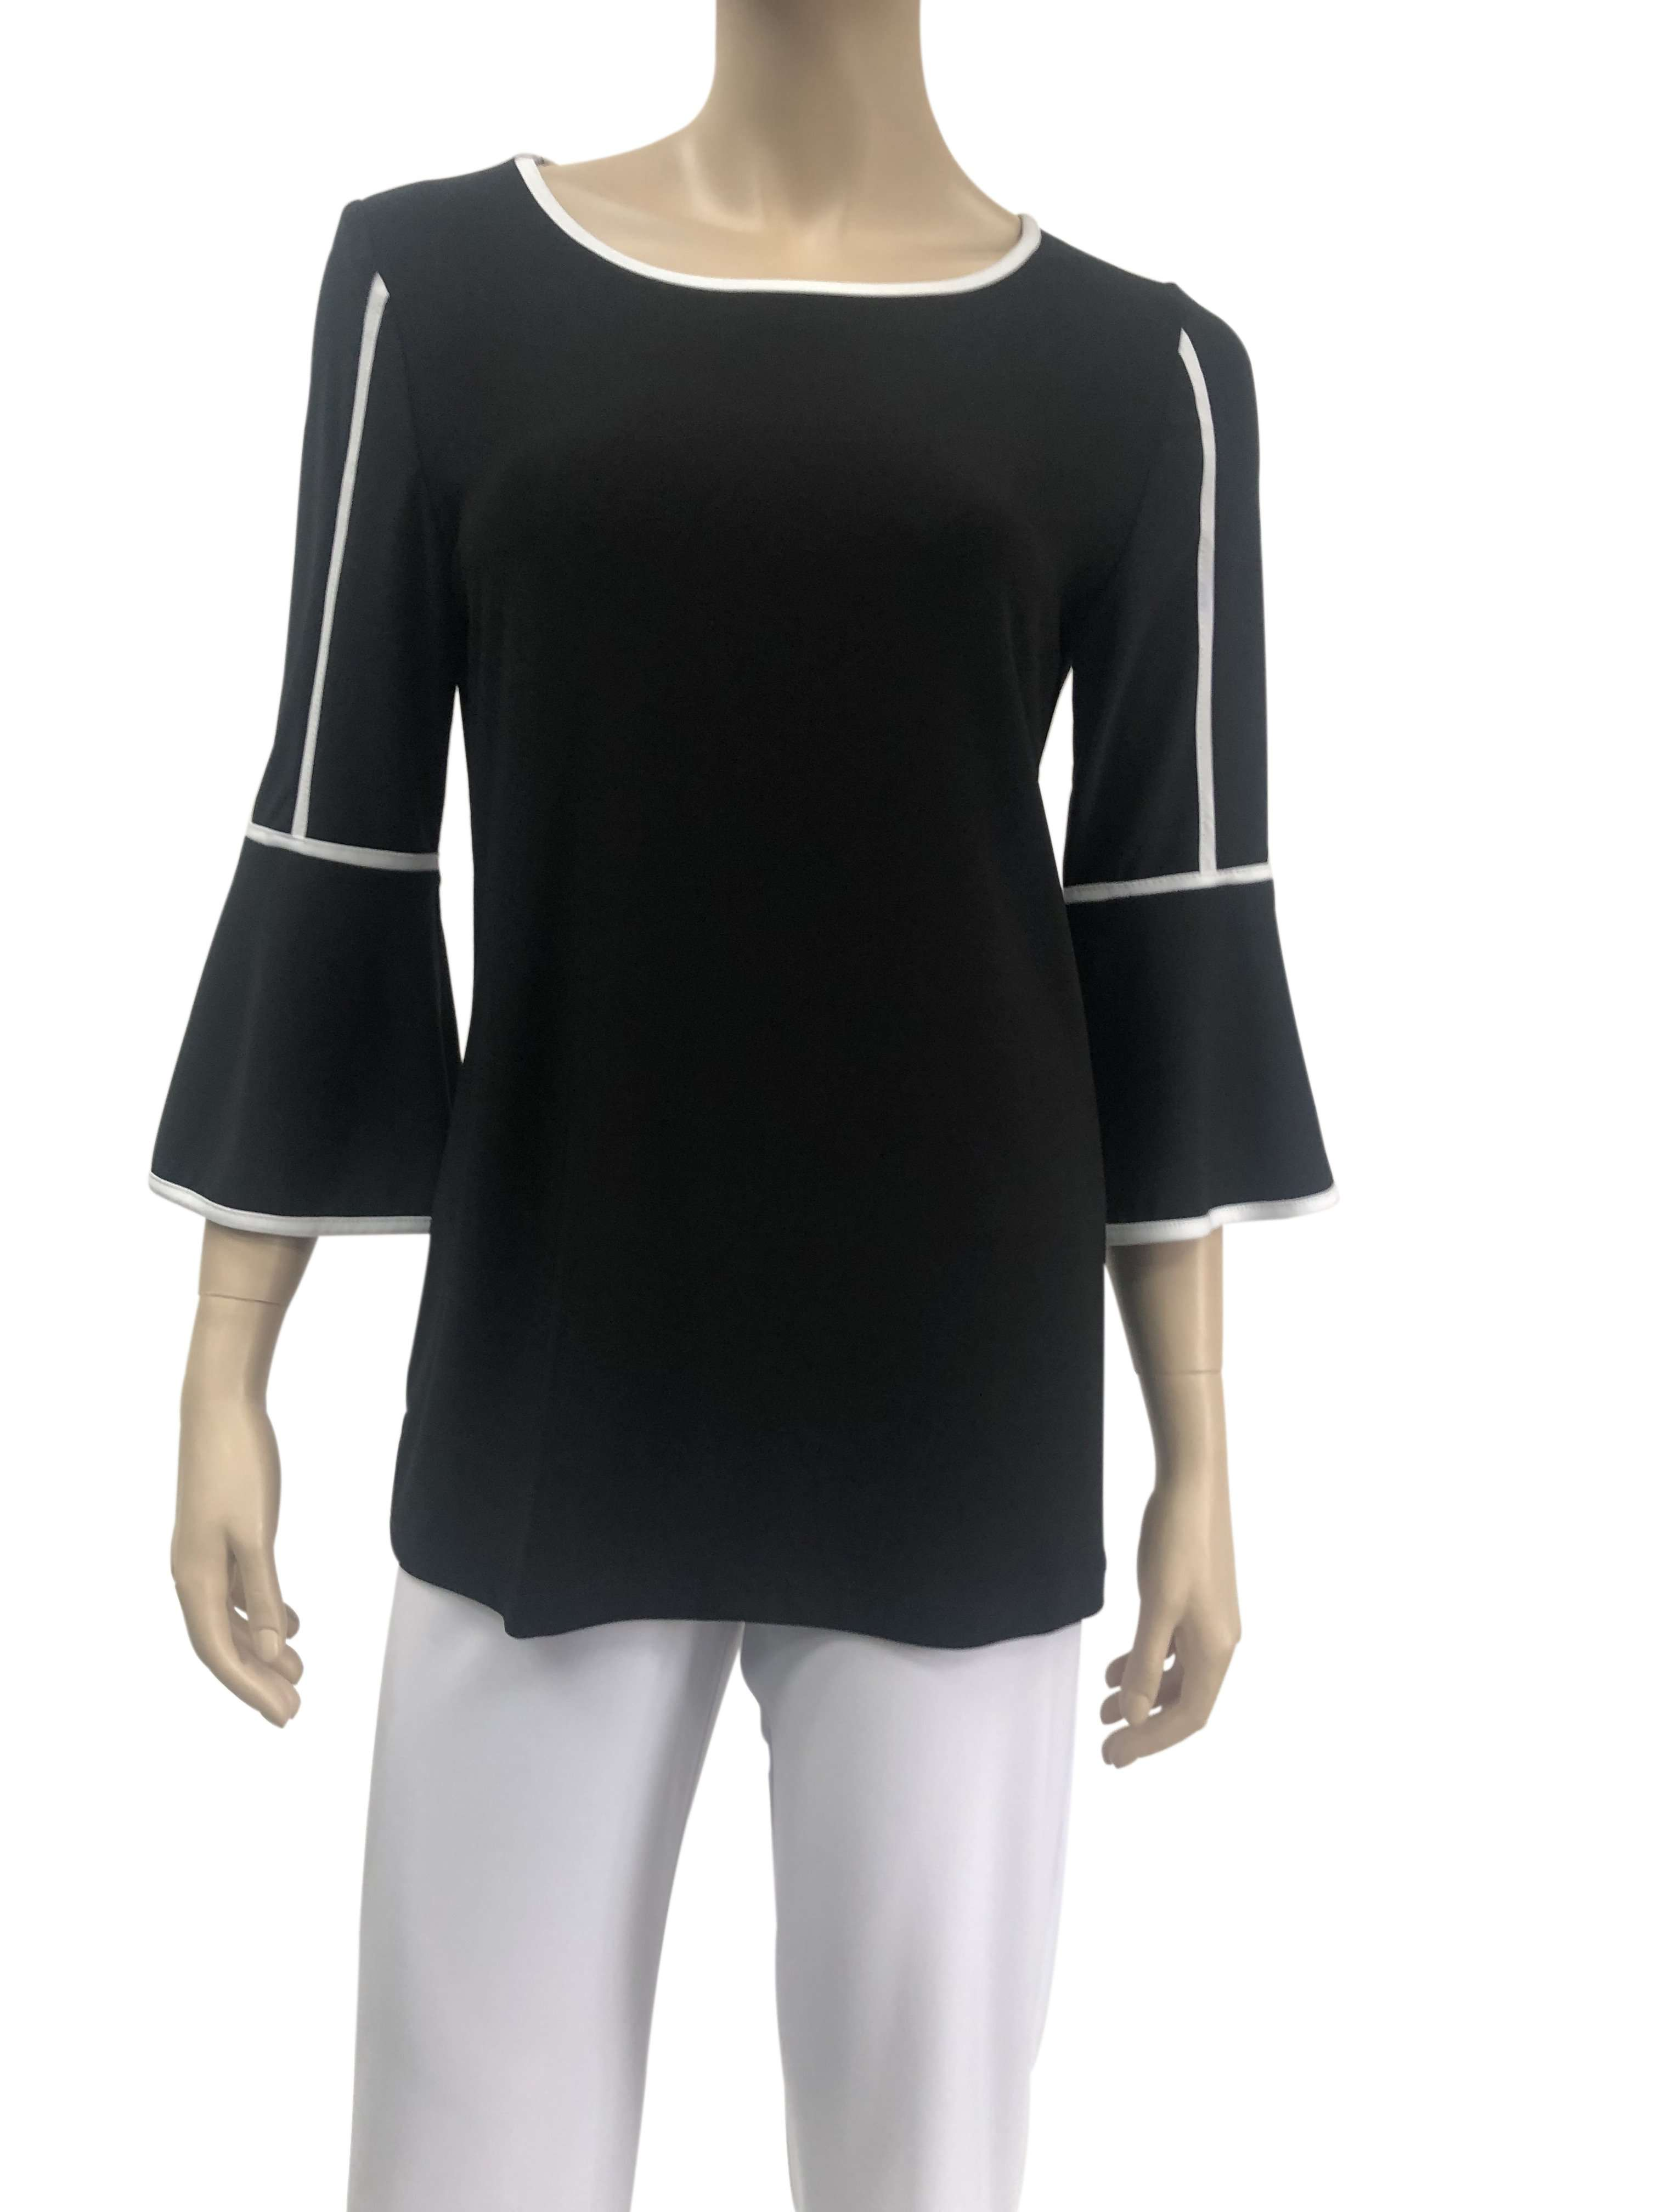 Womens Blouses Canada | Black And White Blouse | XL Size | On Sale | Ym Style - Yvonne Marie